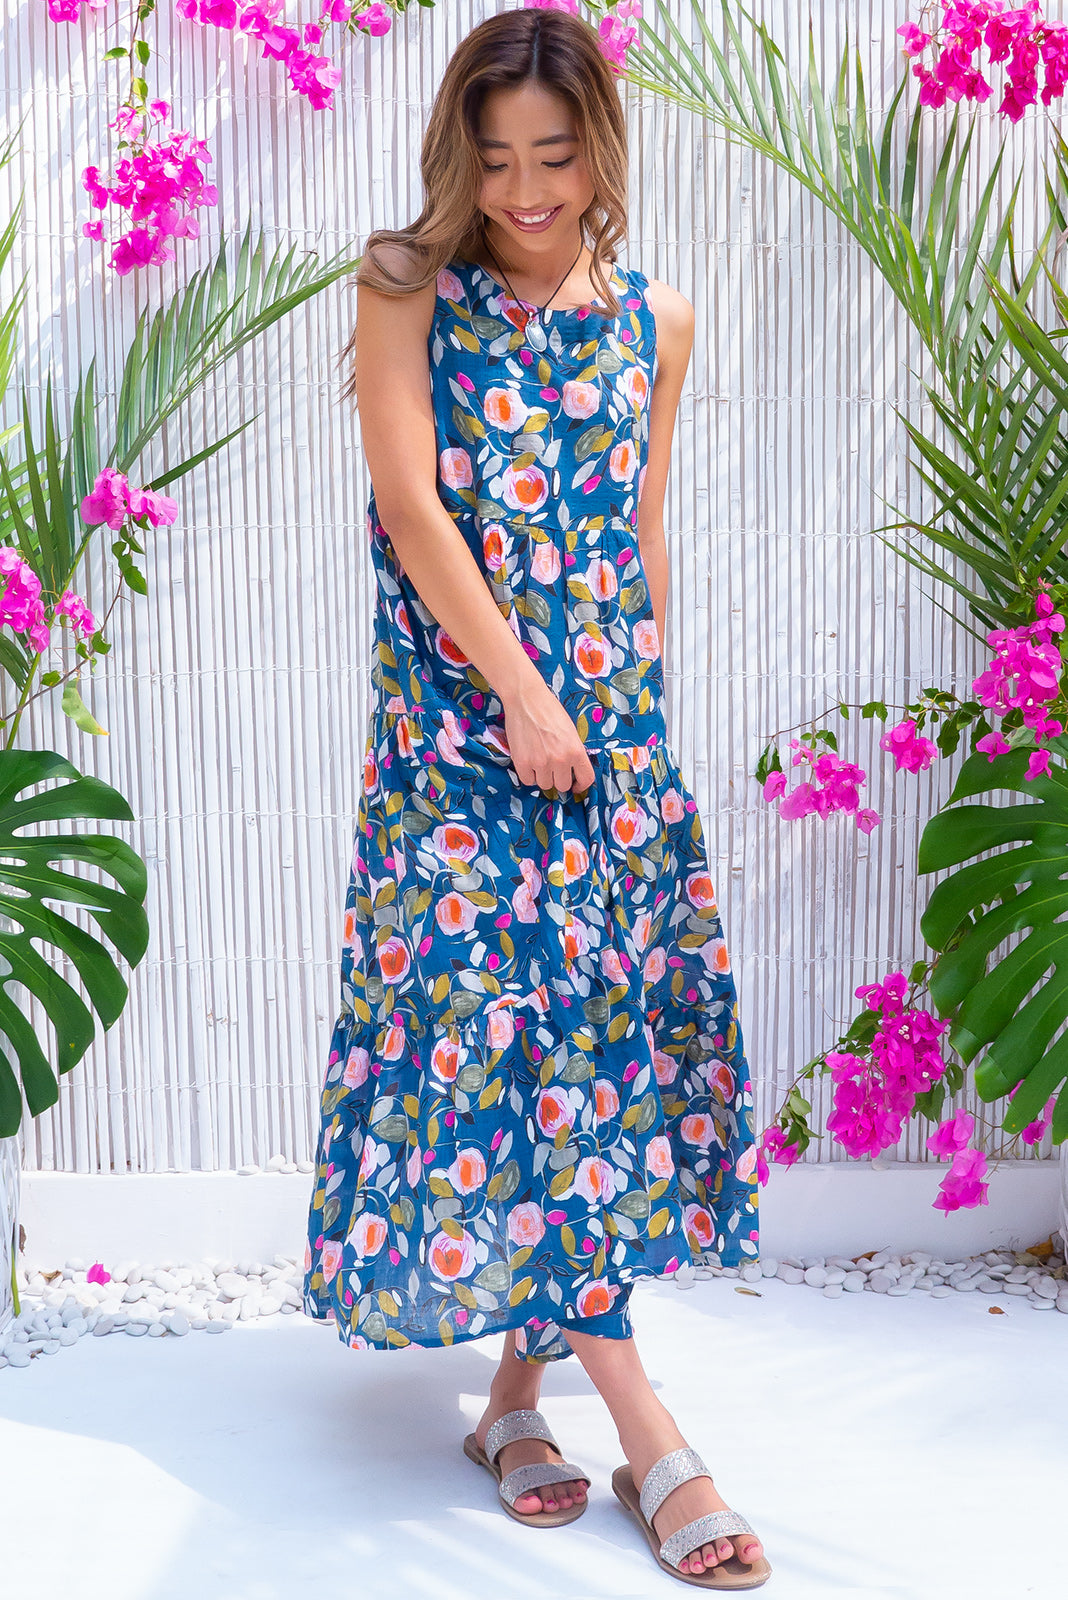 Goldie Polka Rose Dress, bohemian summer style, 100% cotton, high scooped neckline, sleeveless, three tiered skirt, side pockets, navy/teal base with fuchsia, peach, gold, mint and khaki rose print.